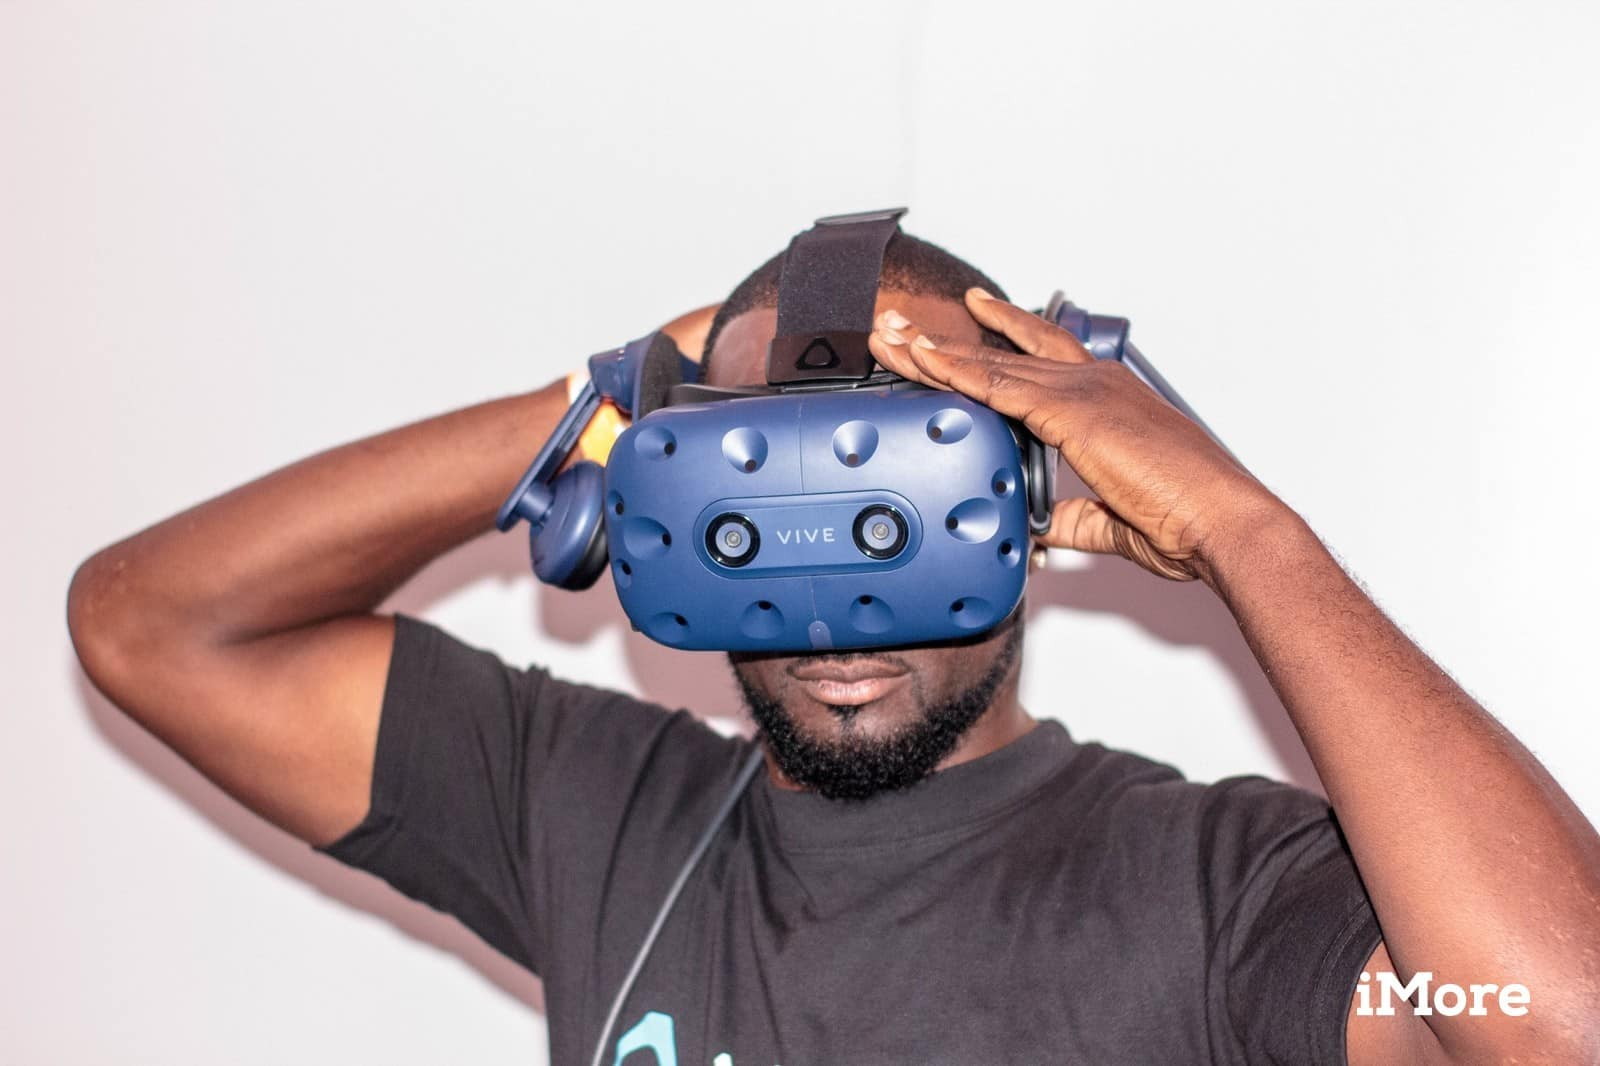 Vive Pro increased comfort